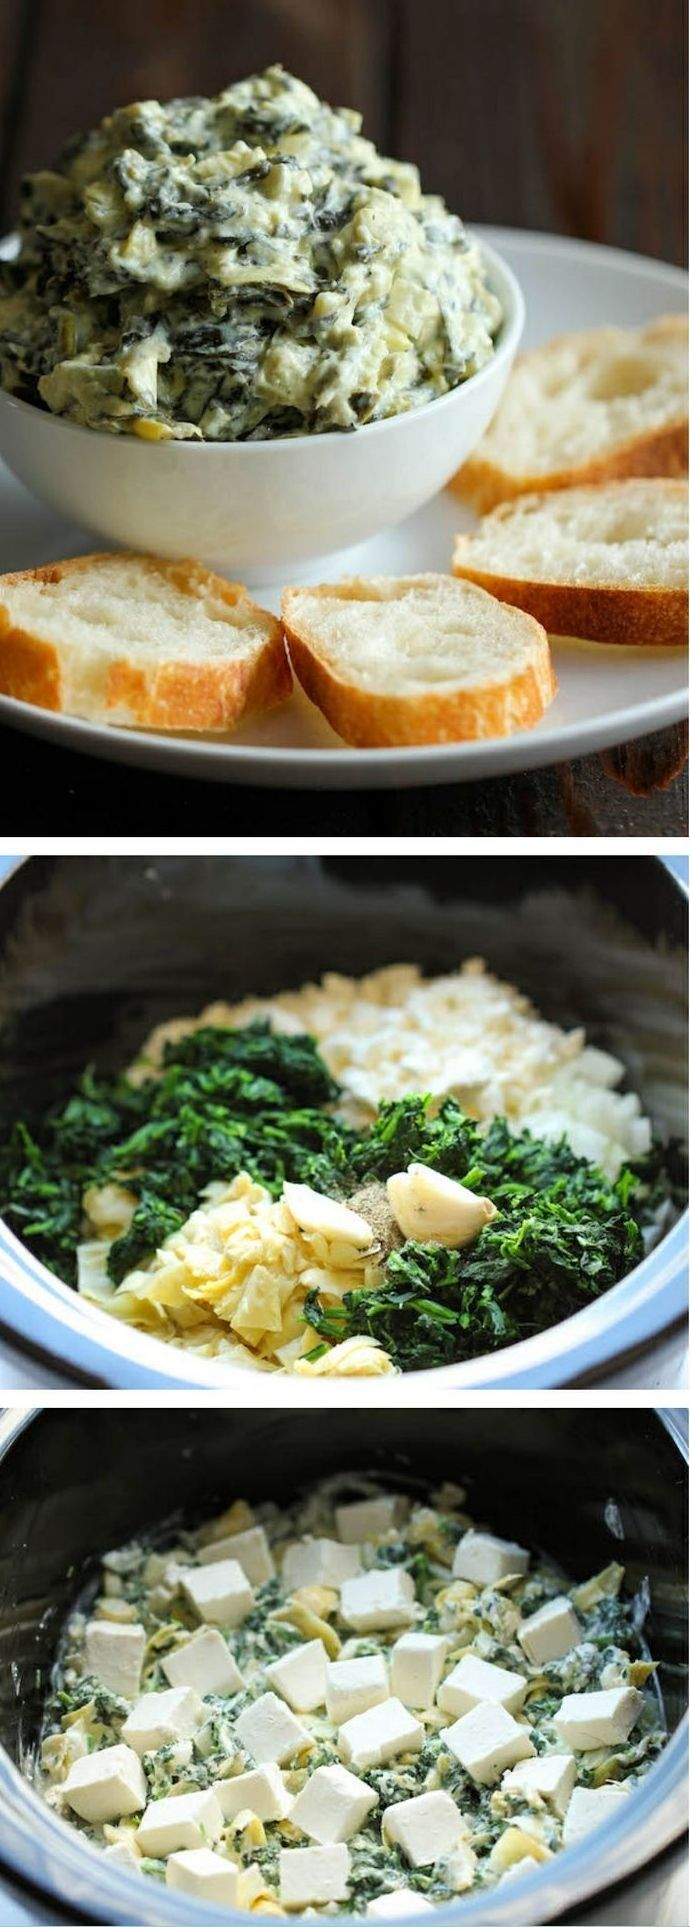 Slow Cooker Spinach and Artichoke Dip | #Artichoke #Cooker #Slow #spinach